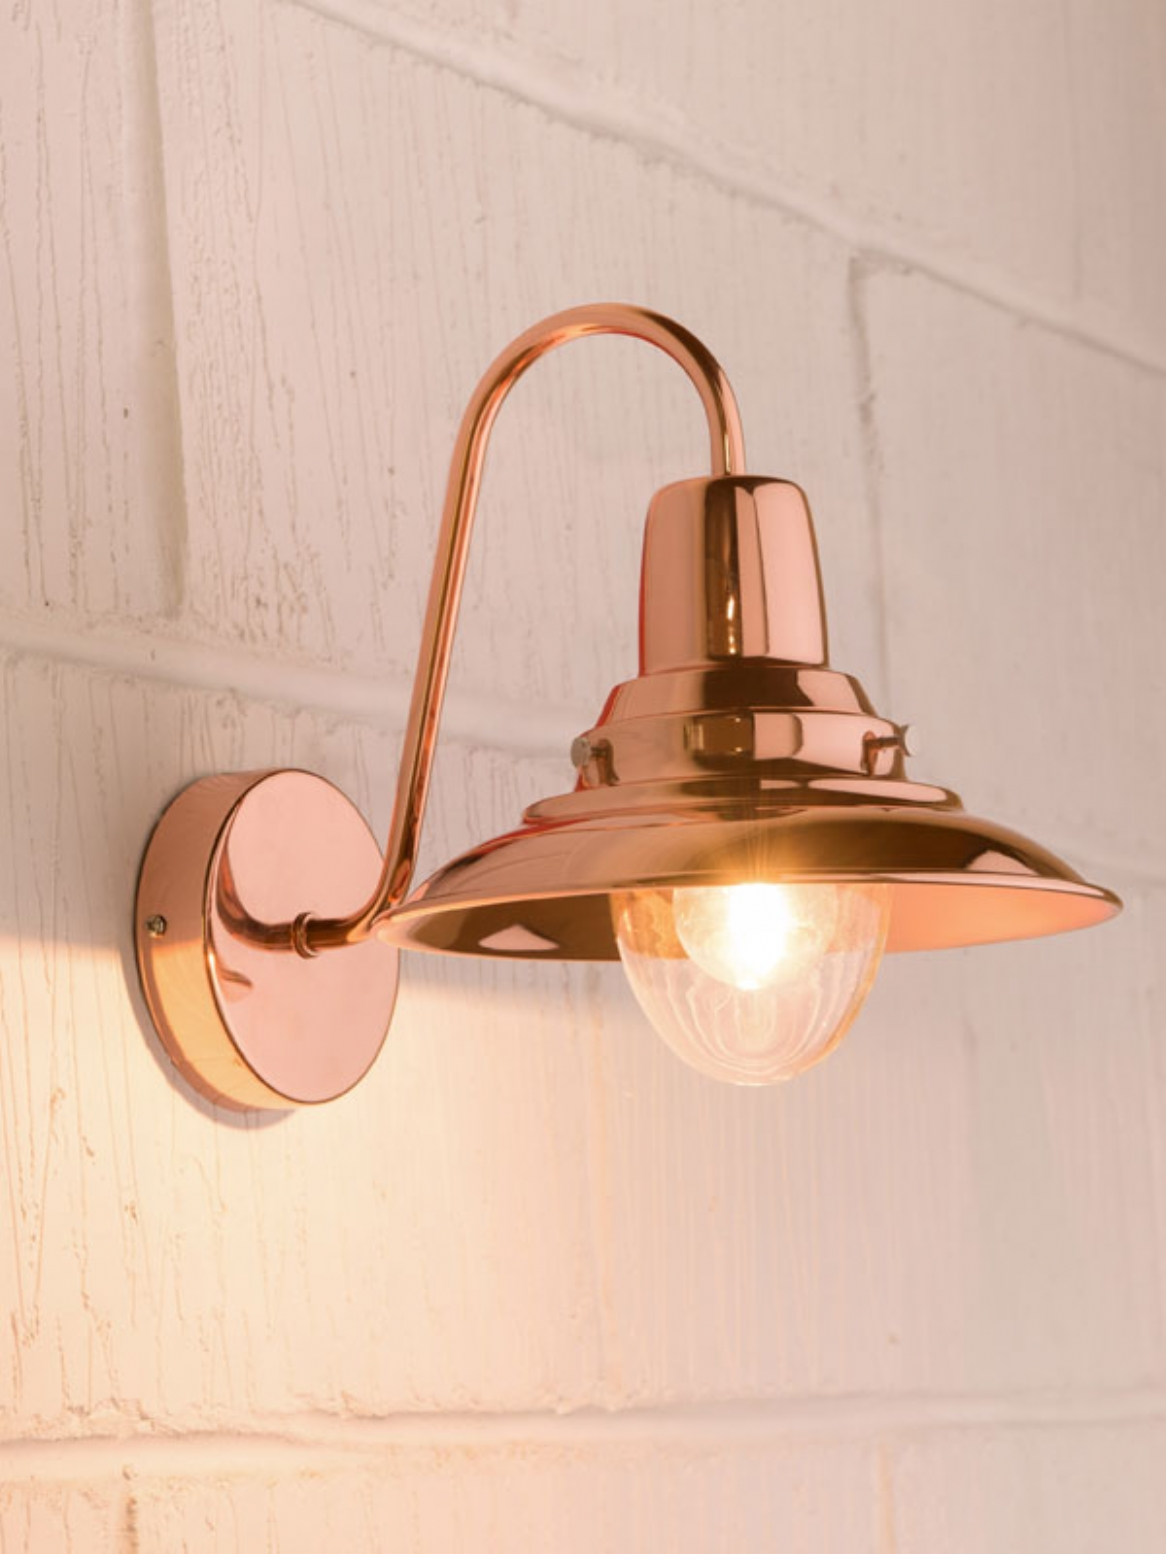 Copper wall lights - 10 methods to Give Your Home a Medieval Feel Warisan Lighting